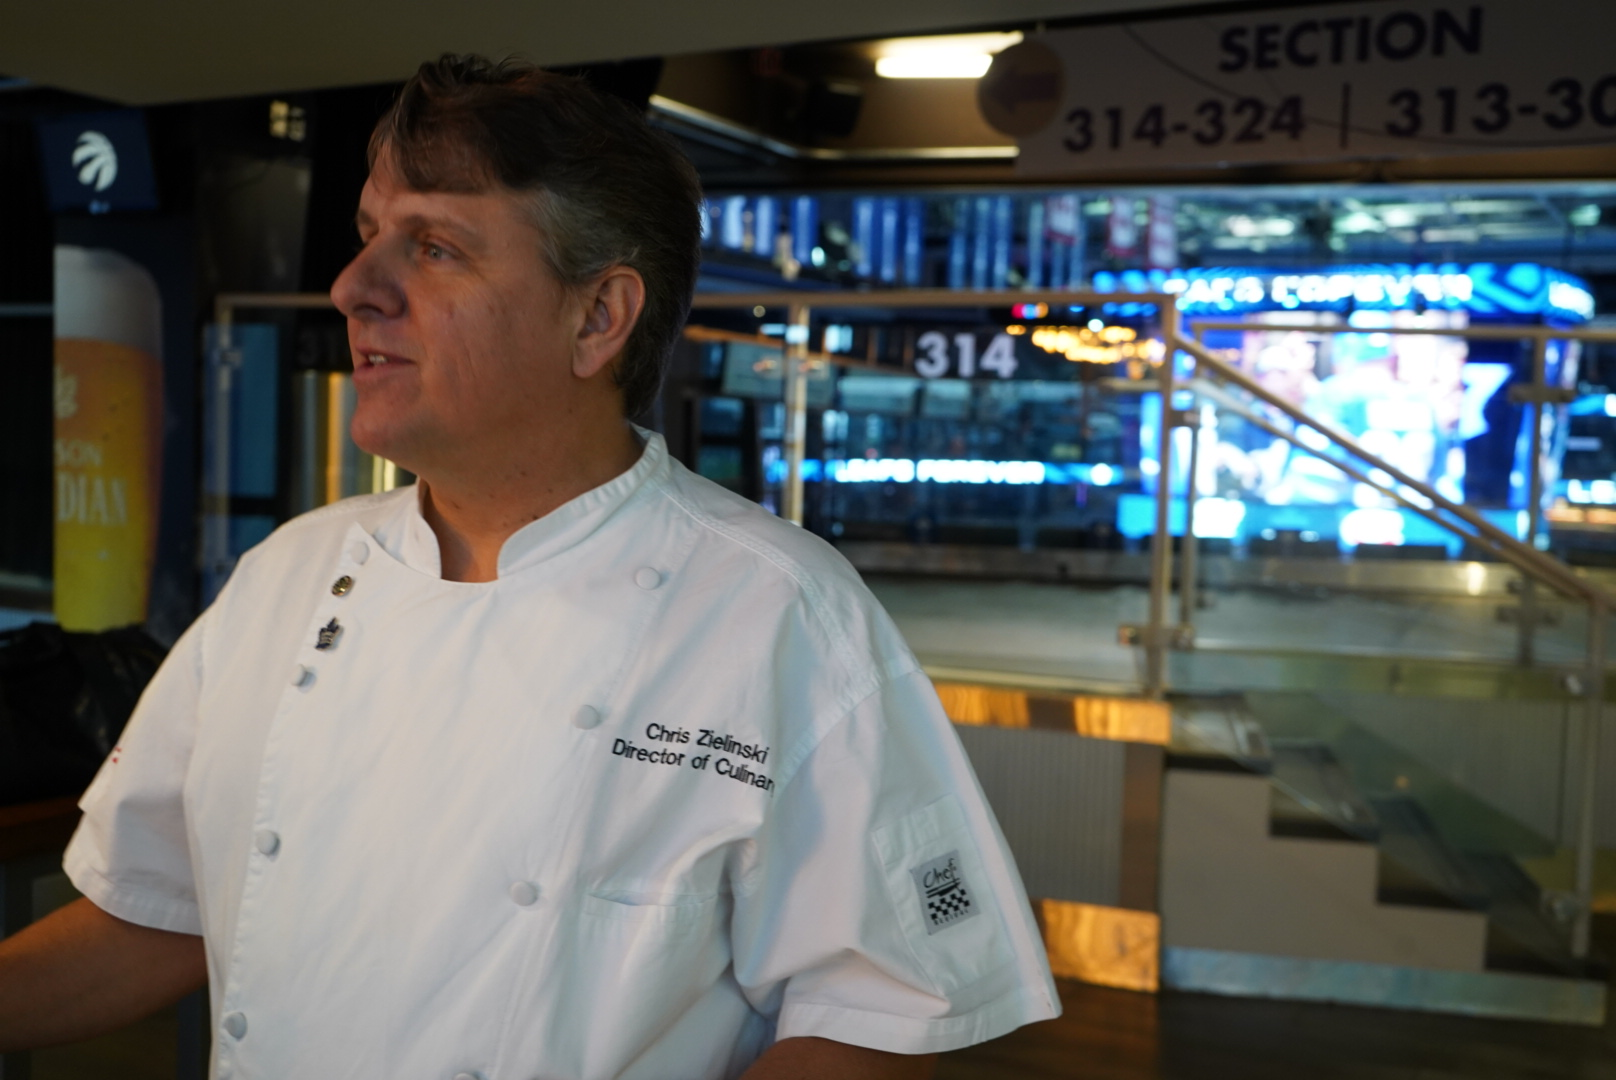 MLSE's Culinary Director, Chef Chris Zielinski